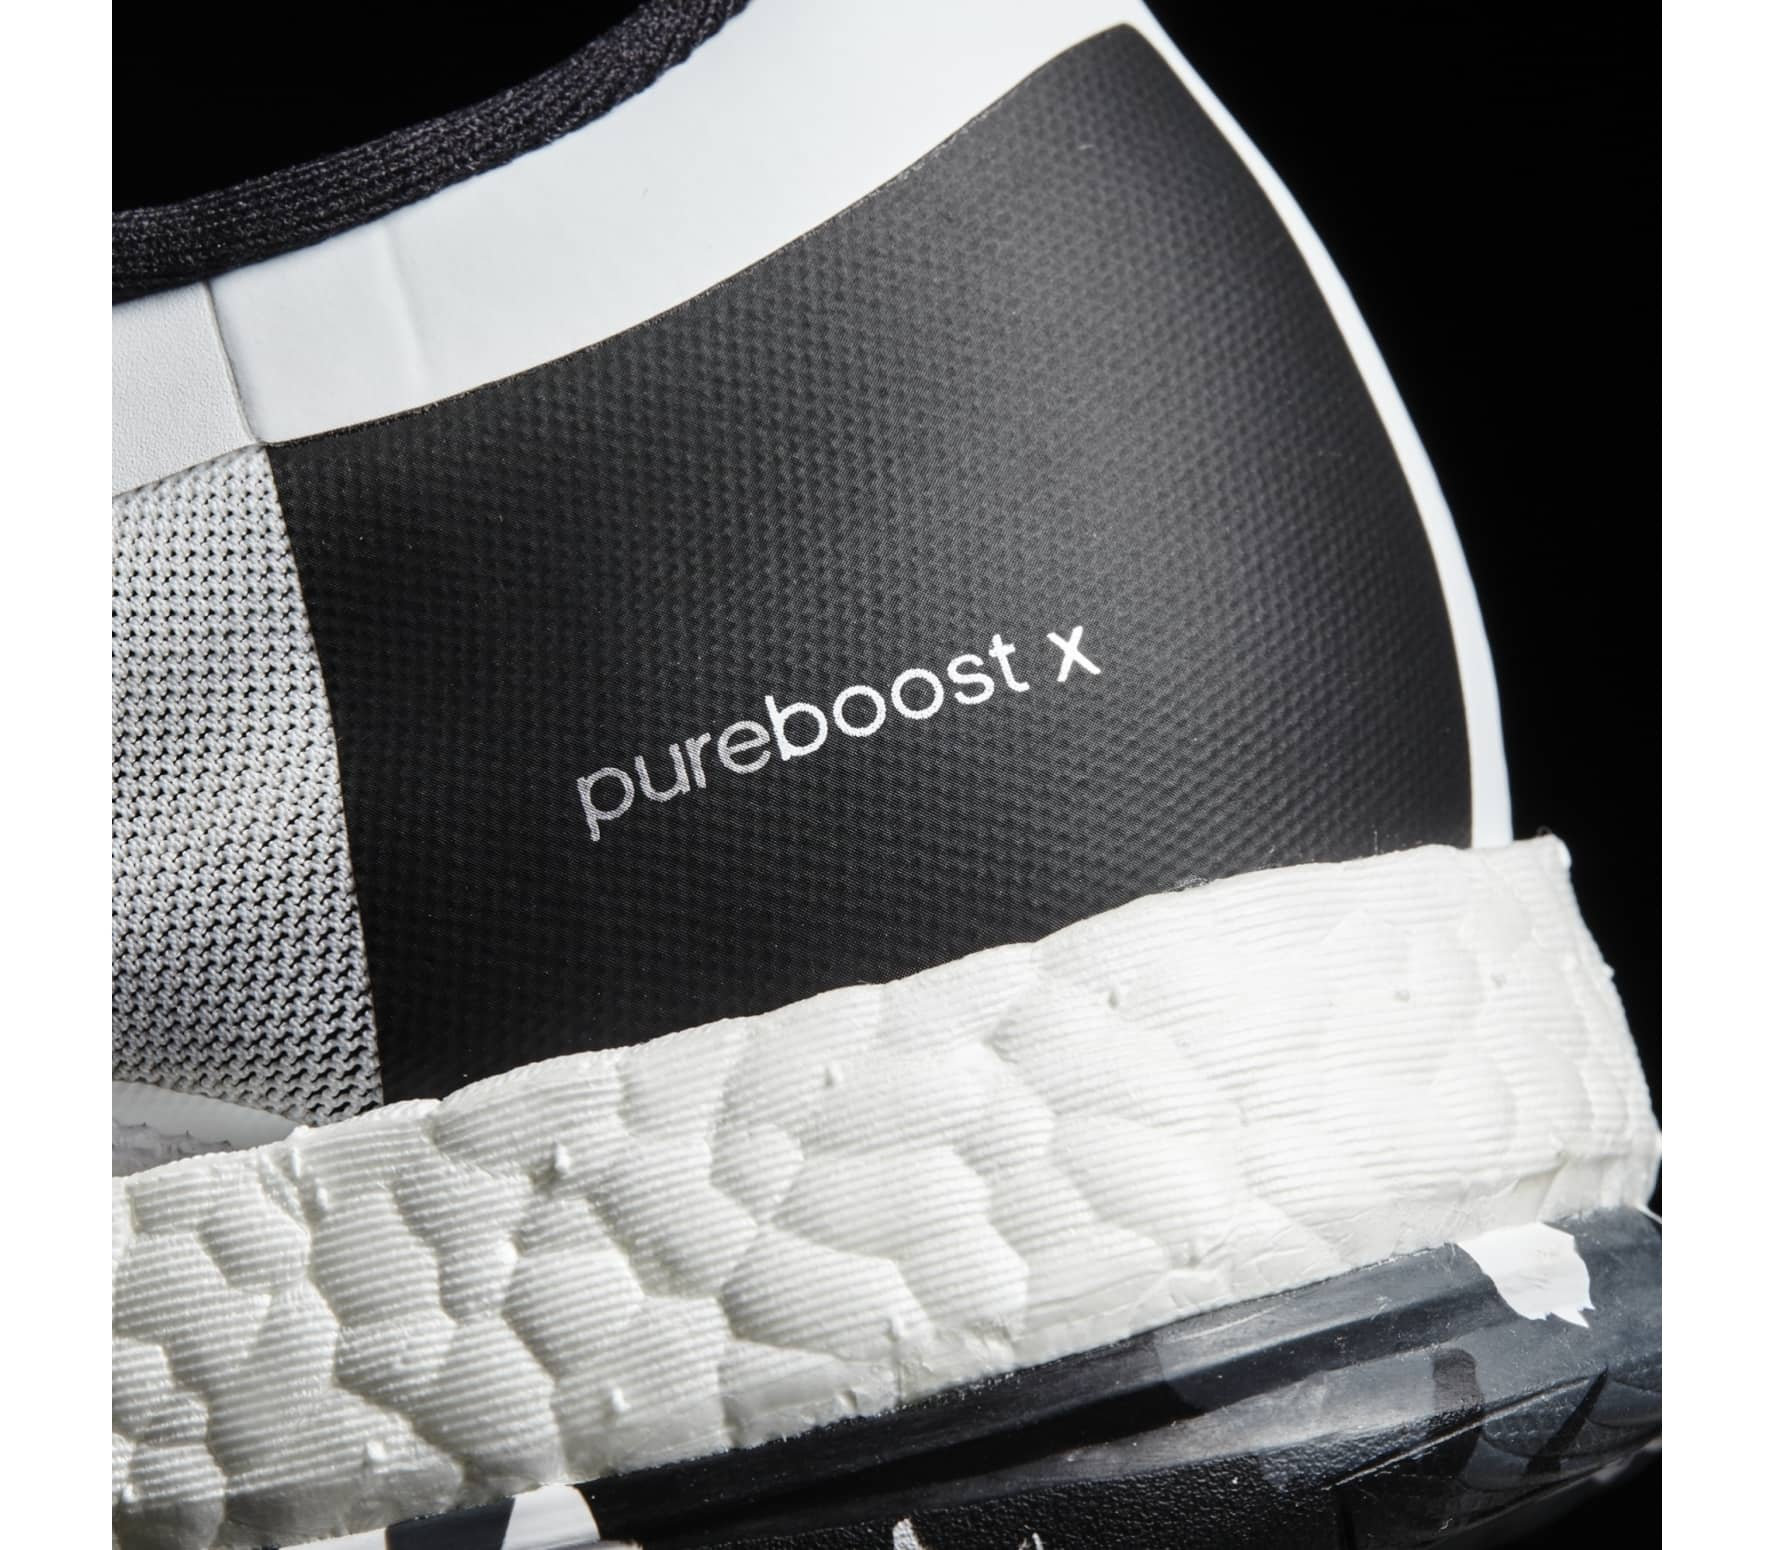 reputable site 83a27 eeff4 Adidas - Pure Boost X TR Zip women s training shoes (white black)